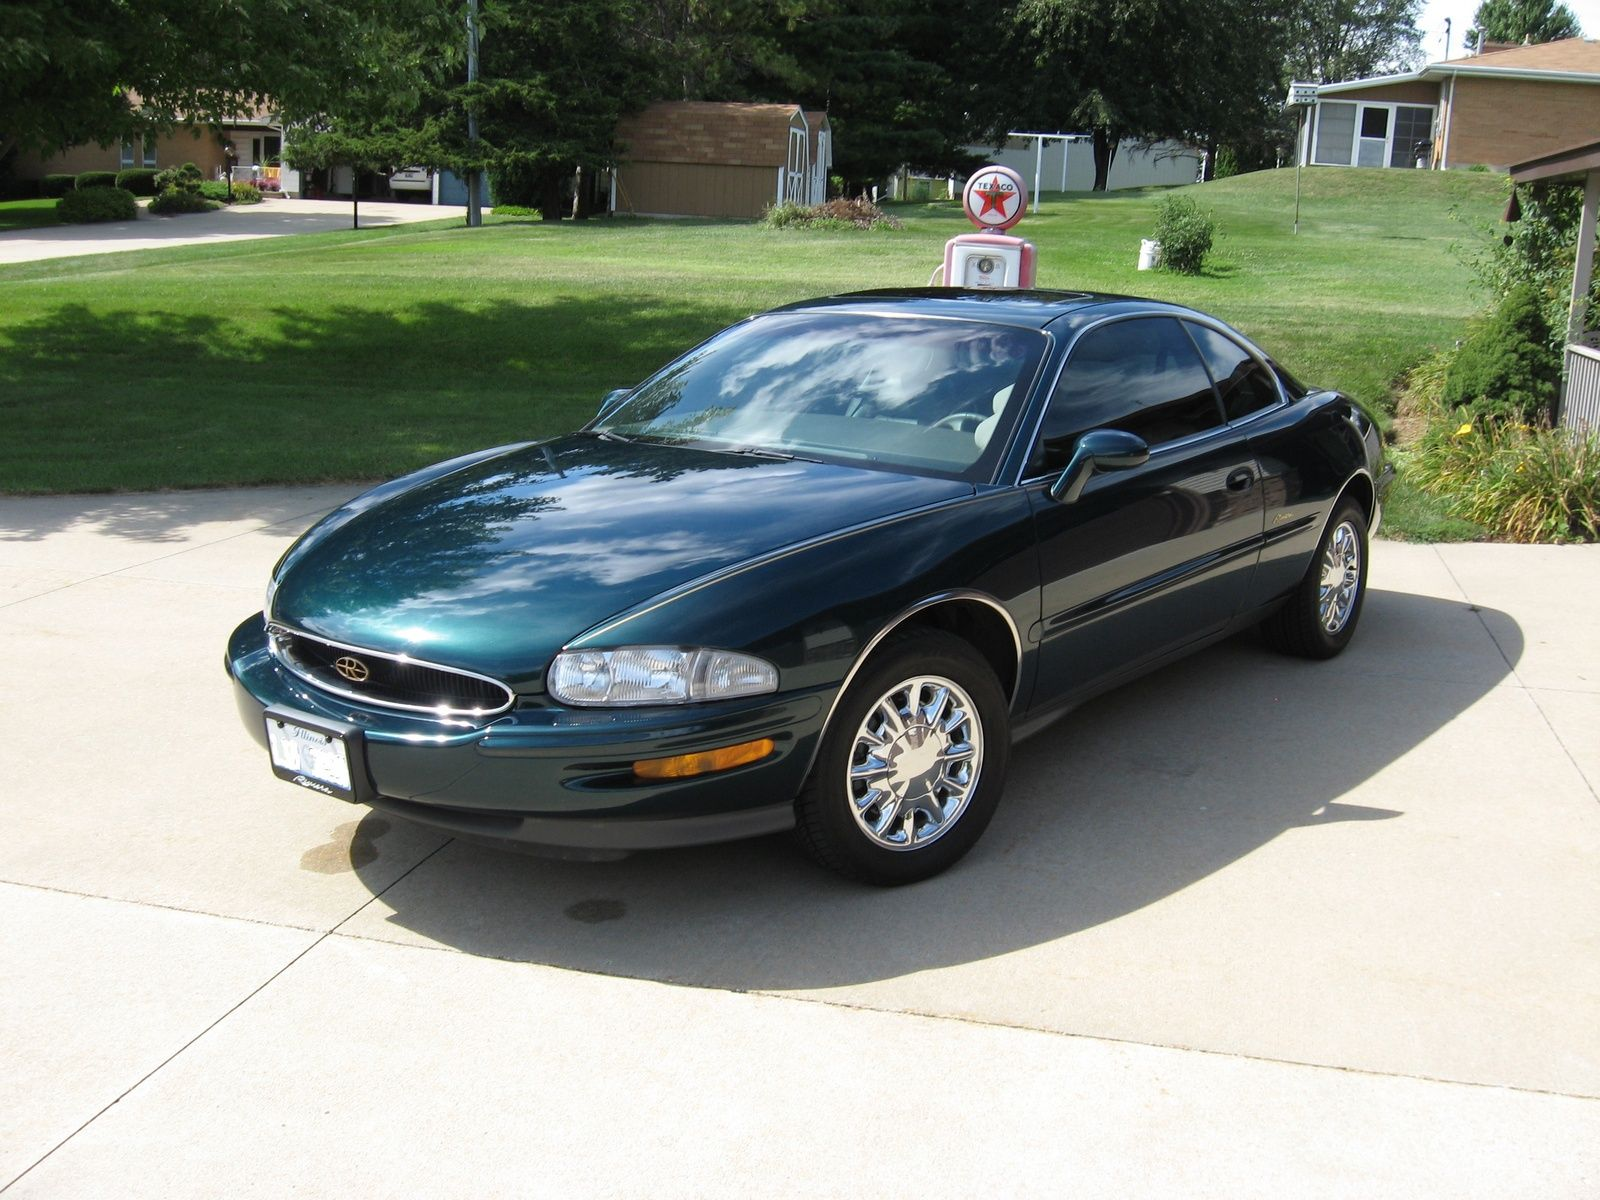 1990 Buick 1998 Buick Riviera Supercharged Coupe, 1998